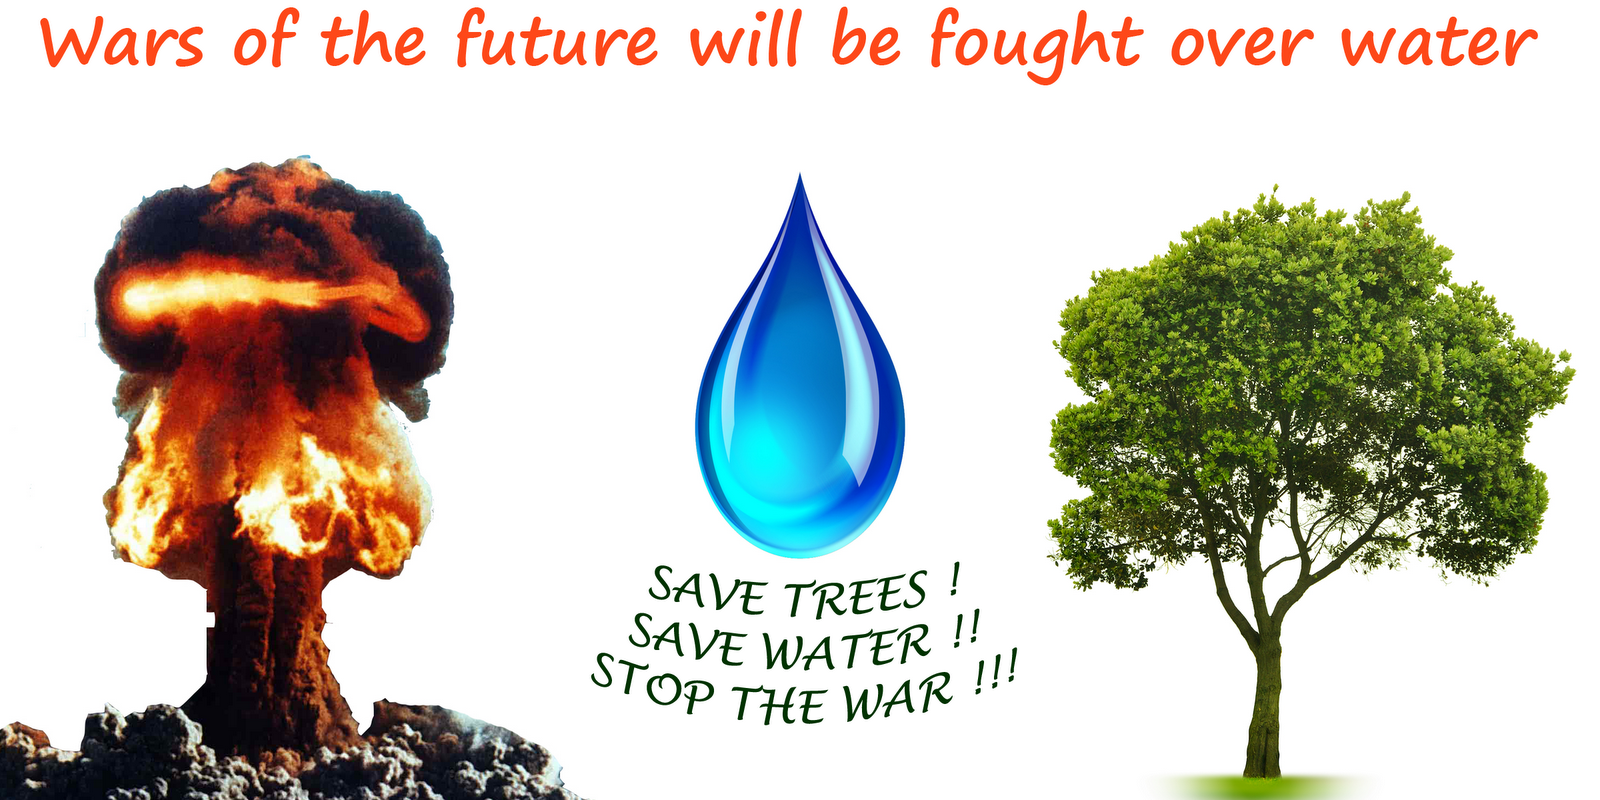 save water save earth essay save the earth from pollution essay water in life essaysave earth life essay in hindi essay topics save earth life essay in